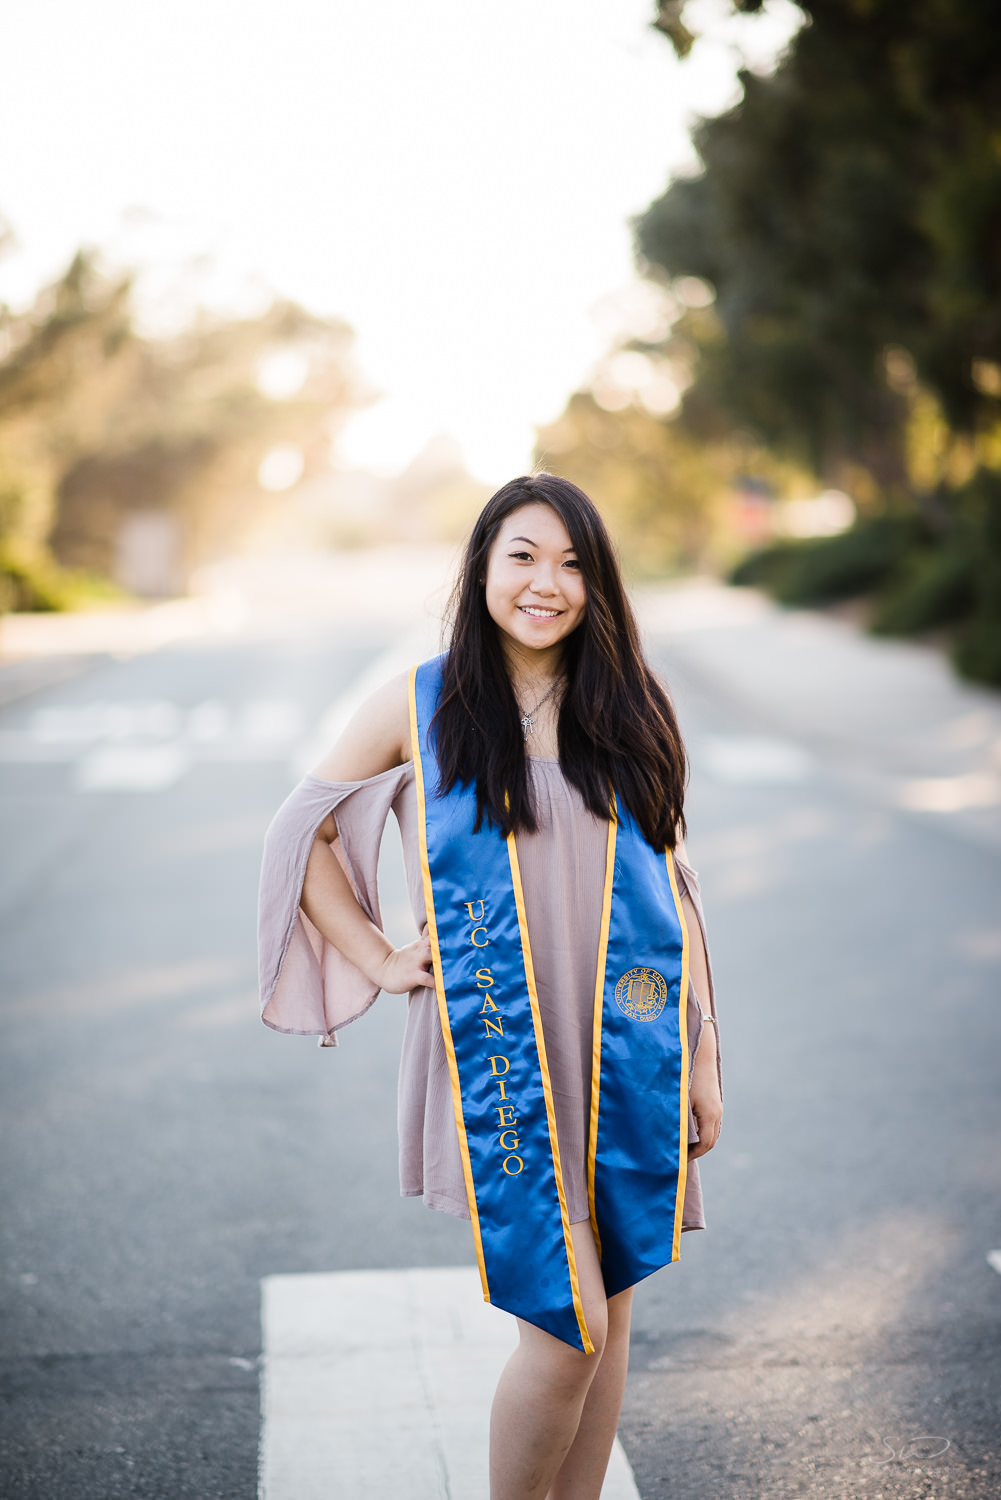 Posing on campus. Best graduation portrait photography, San Diego.